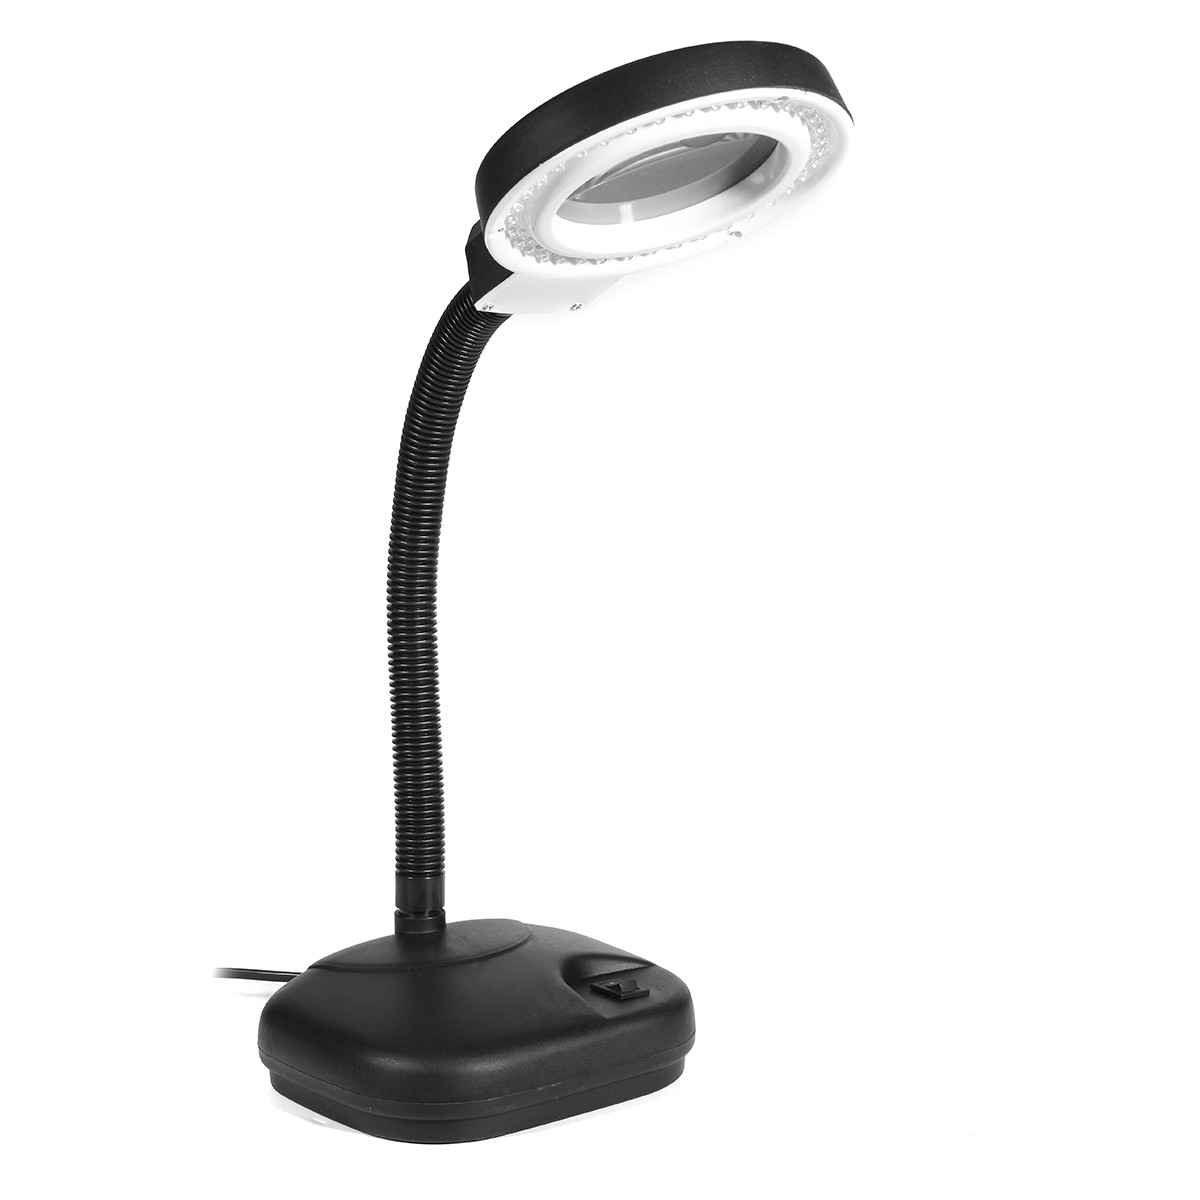 Best ideas about Magnification Desk Lamp . Save or Pin 40 LED Lighting Desktop Table Desk Flexible Magnifying Now.